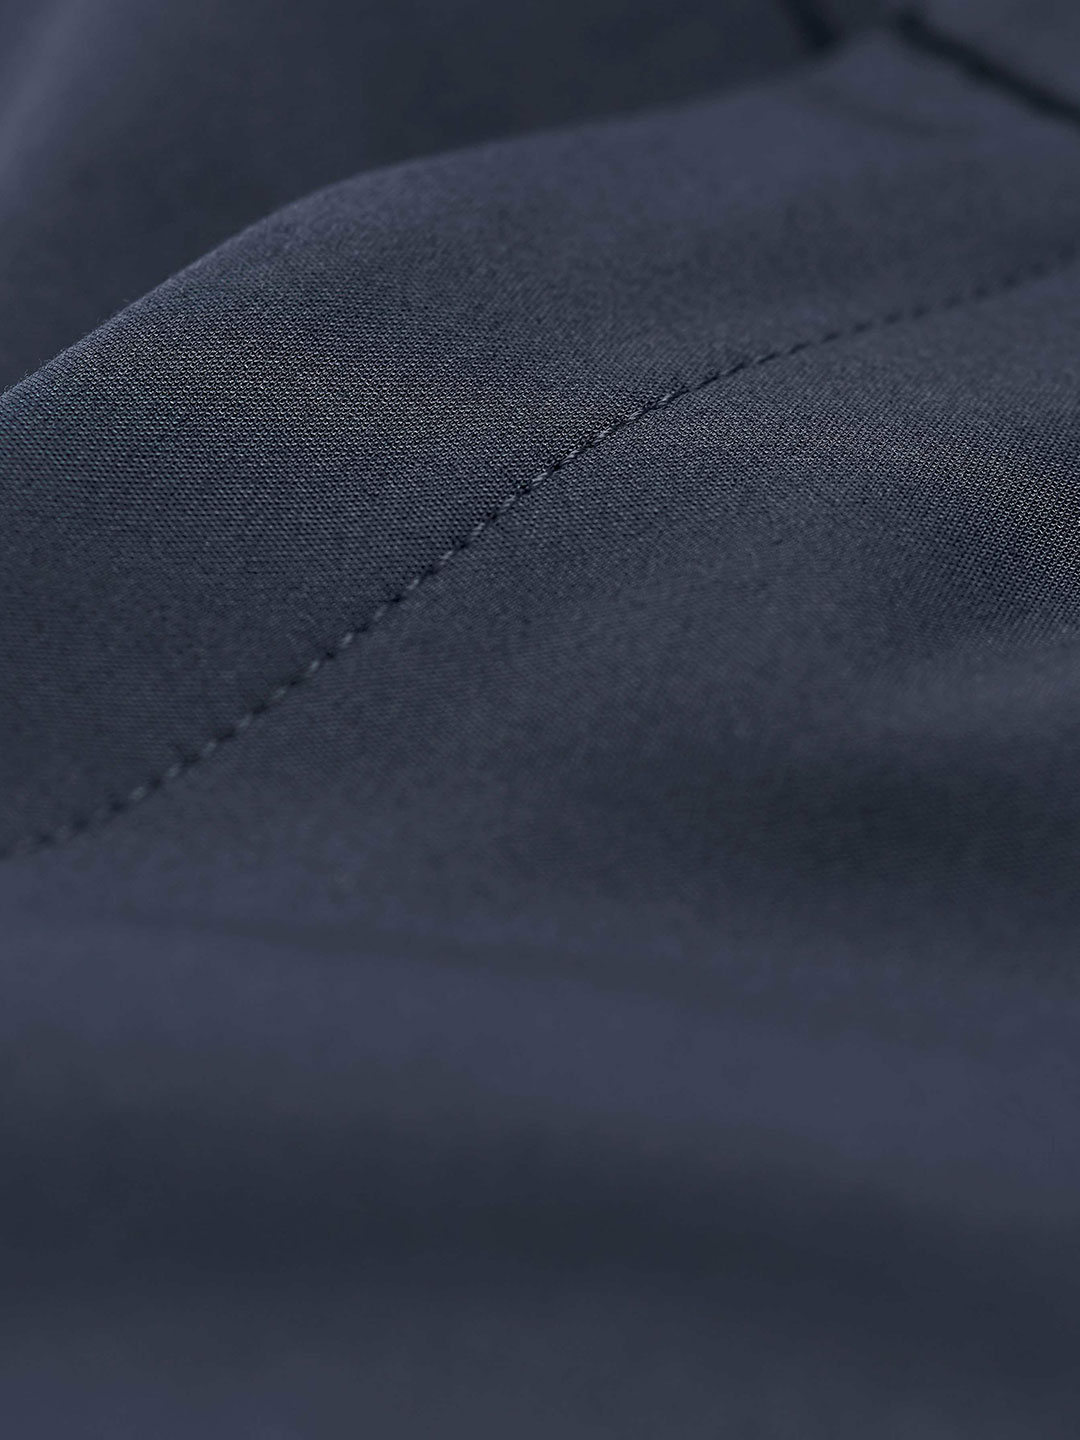 S0086-Cristin-S-Trouser-Tiger-of-Sweden-Midnight-Blue-Close-Up-Fabric